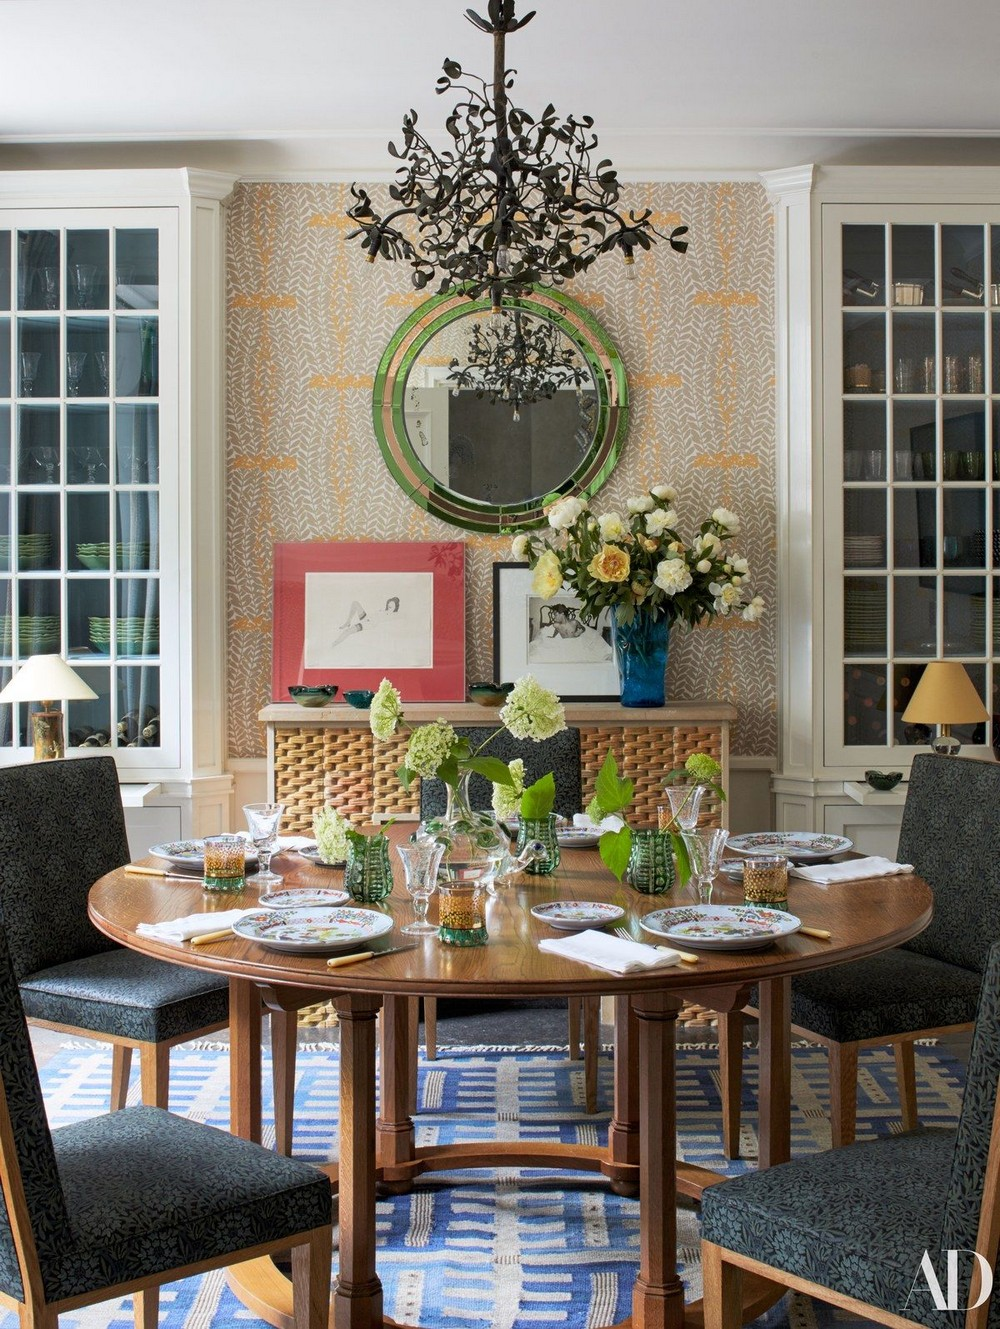 Traditional Meets Contemporary: Dining Rooms by Jacques Grange jacques grange Traditional Meets Contemporary: Dining Rooms by Jacques Grange 3 ad